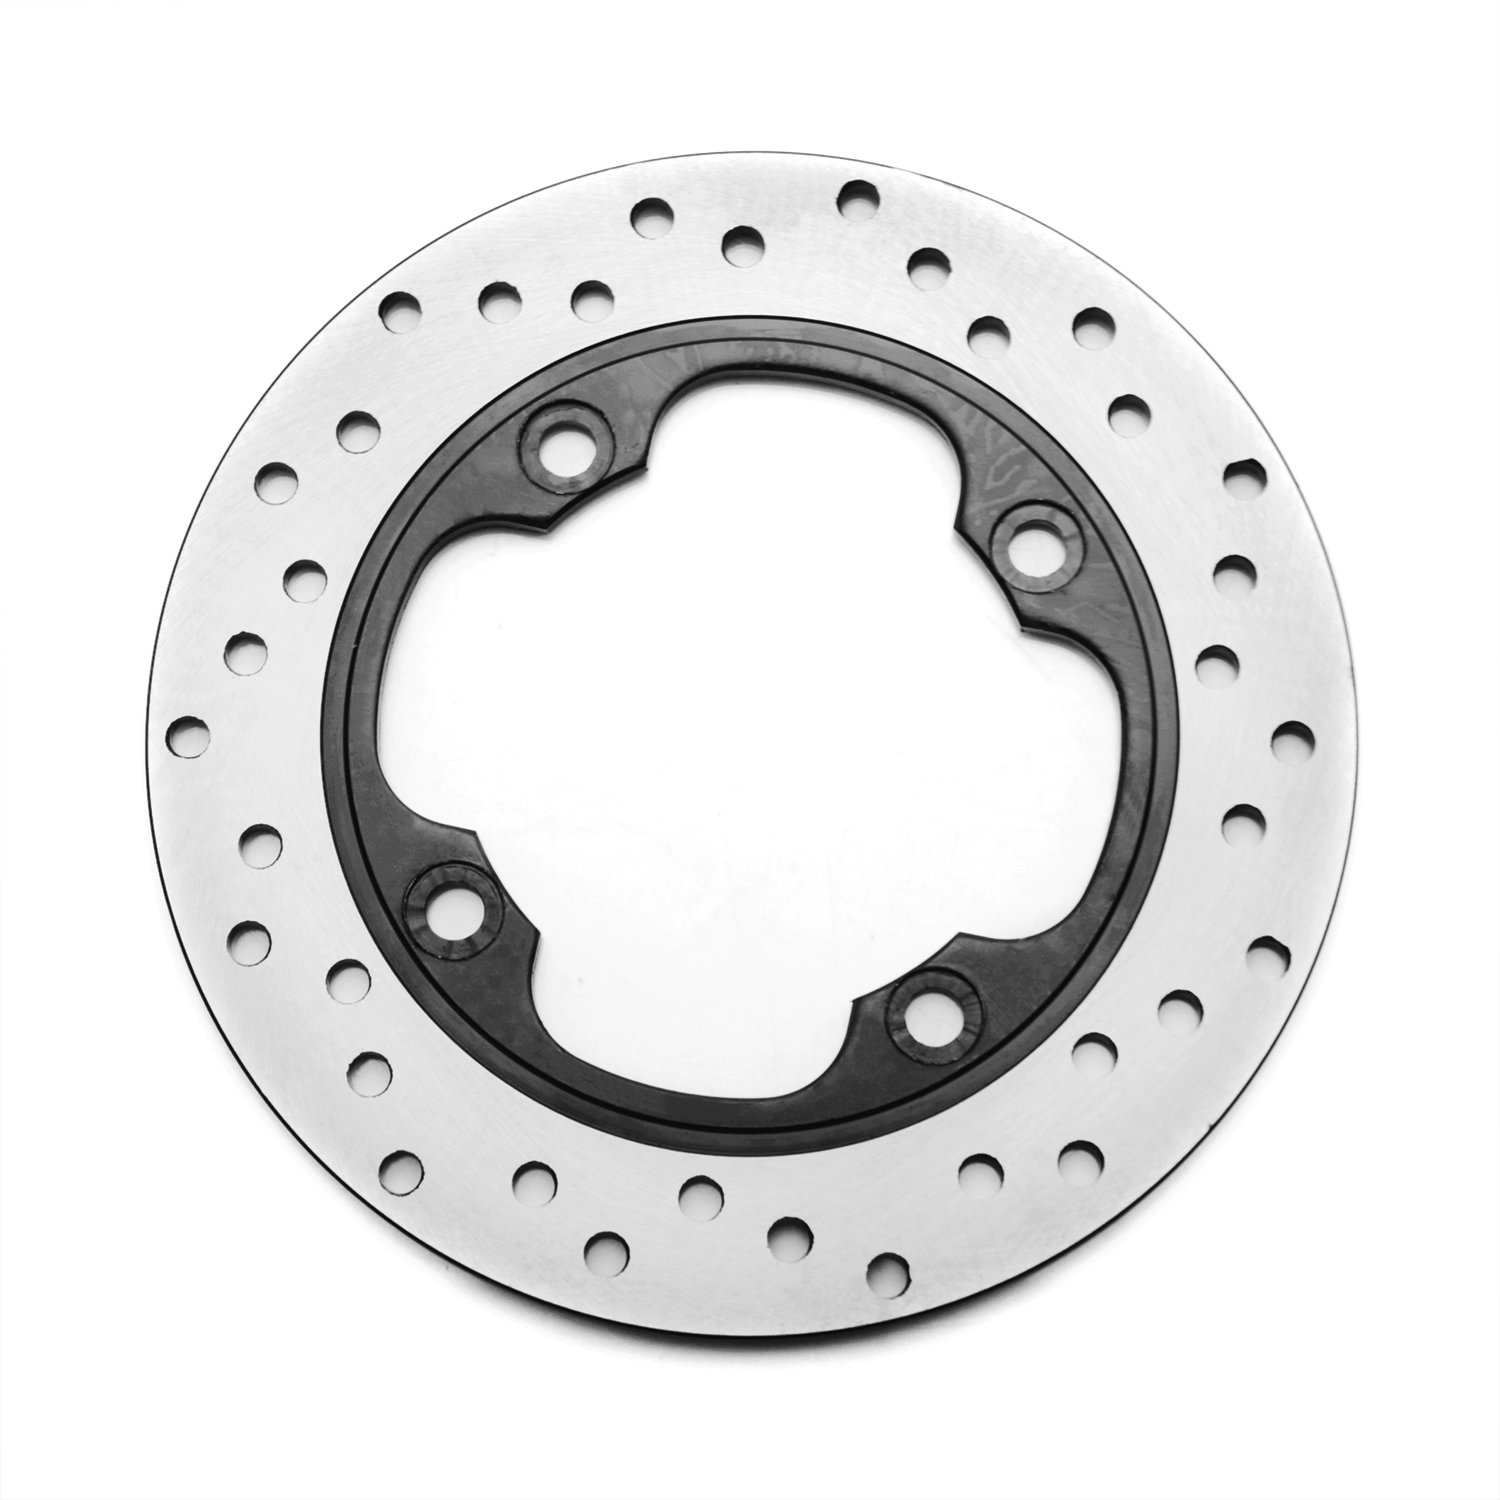 ANUESN Motorcycle Rear Brake Disc Fit For HONDA CBR250 CBR400 CBR600 CBR900 CBR1000 by ANUESN (Image #1)